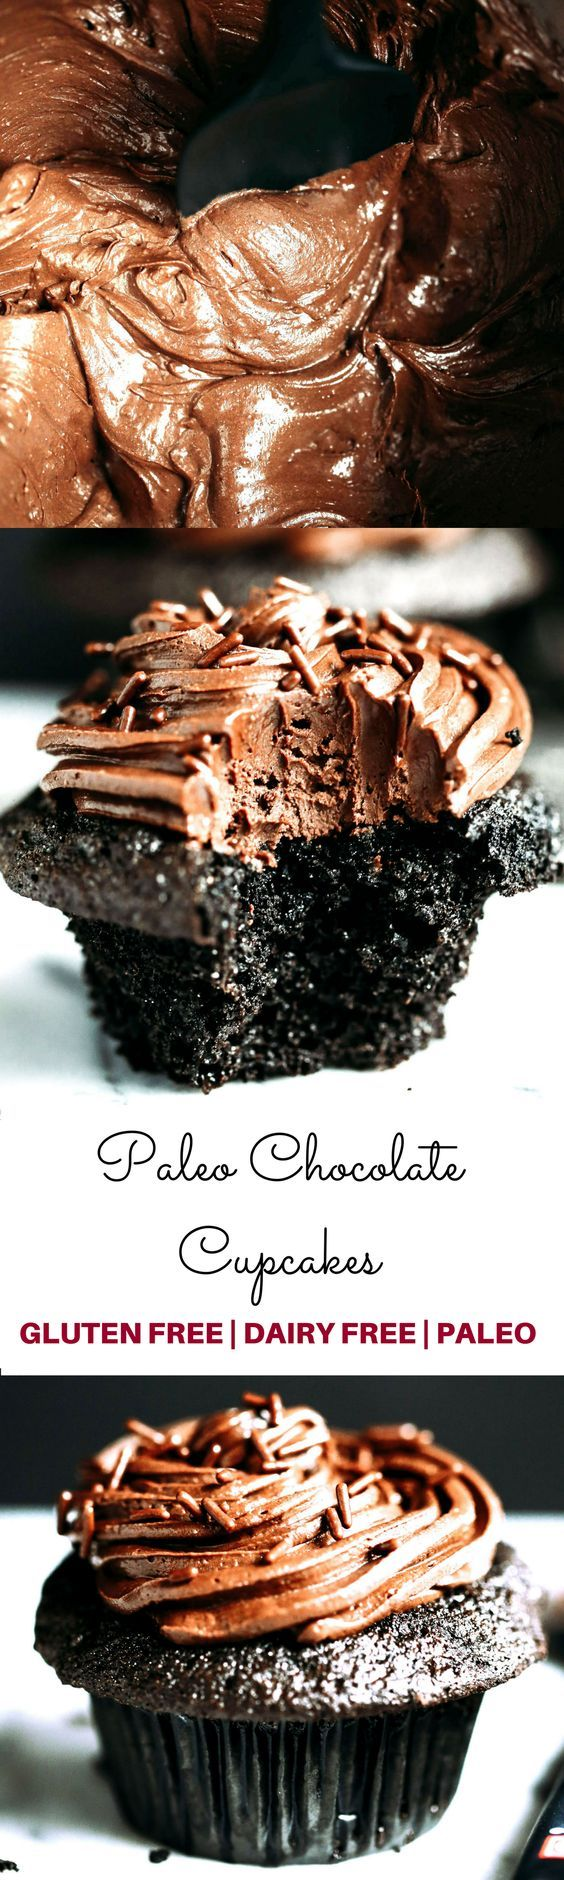 PALEO CHOCOLATE CUPCAKES-Moist, but not eggy! These paleo cupcakes have a rich, dark chocolate taste and are covered in a whipped dairy free refined sugar free chocolate frosting! Coconut flour cupcakes. Best easy Paleo cupcakes.